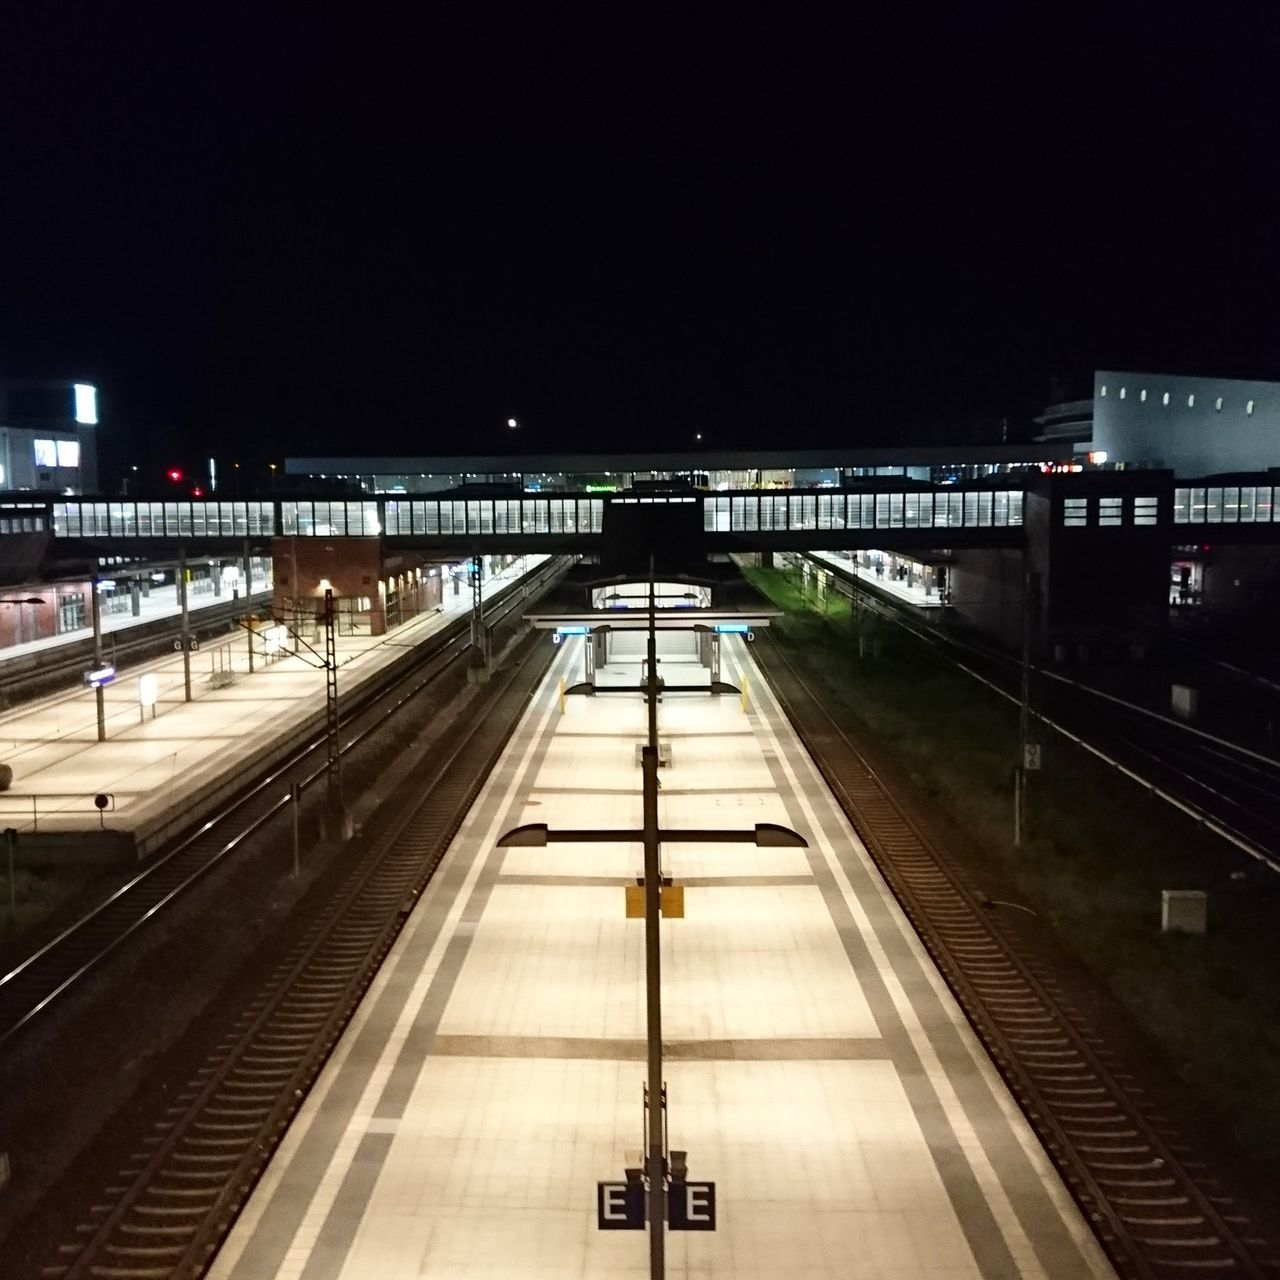 Night Illuminated Railroad Track Railroad Station Outdoors Architecture No People City Architecture Berlin Station